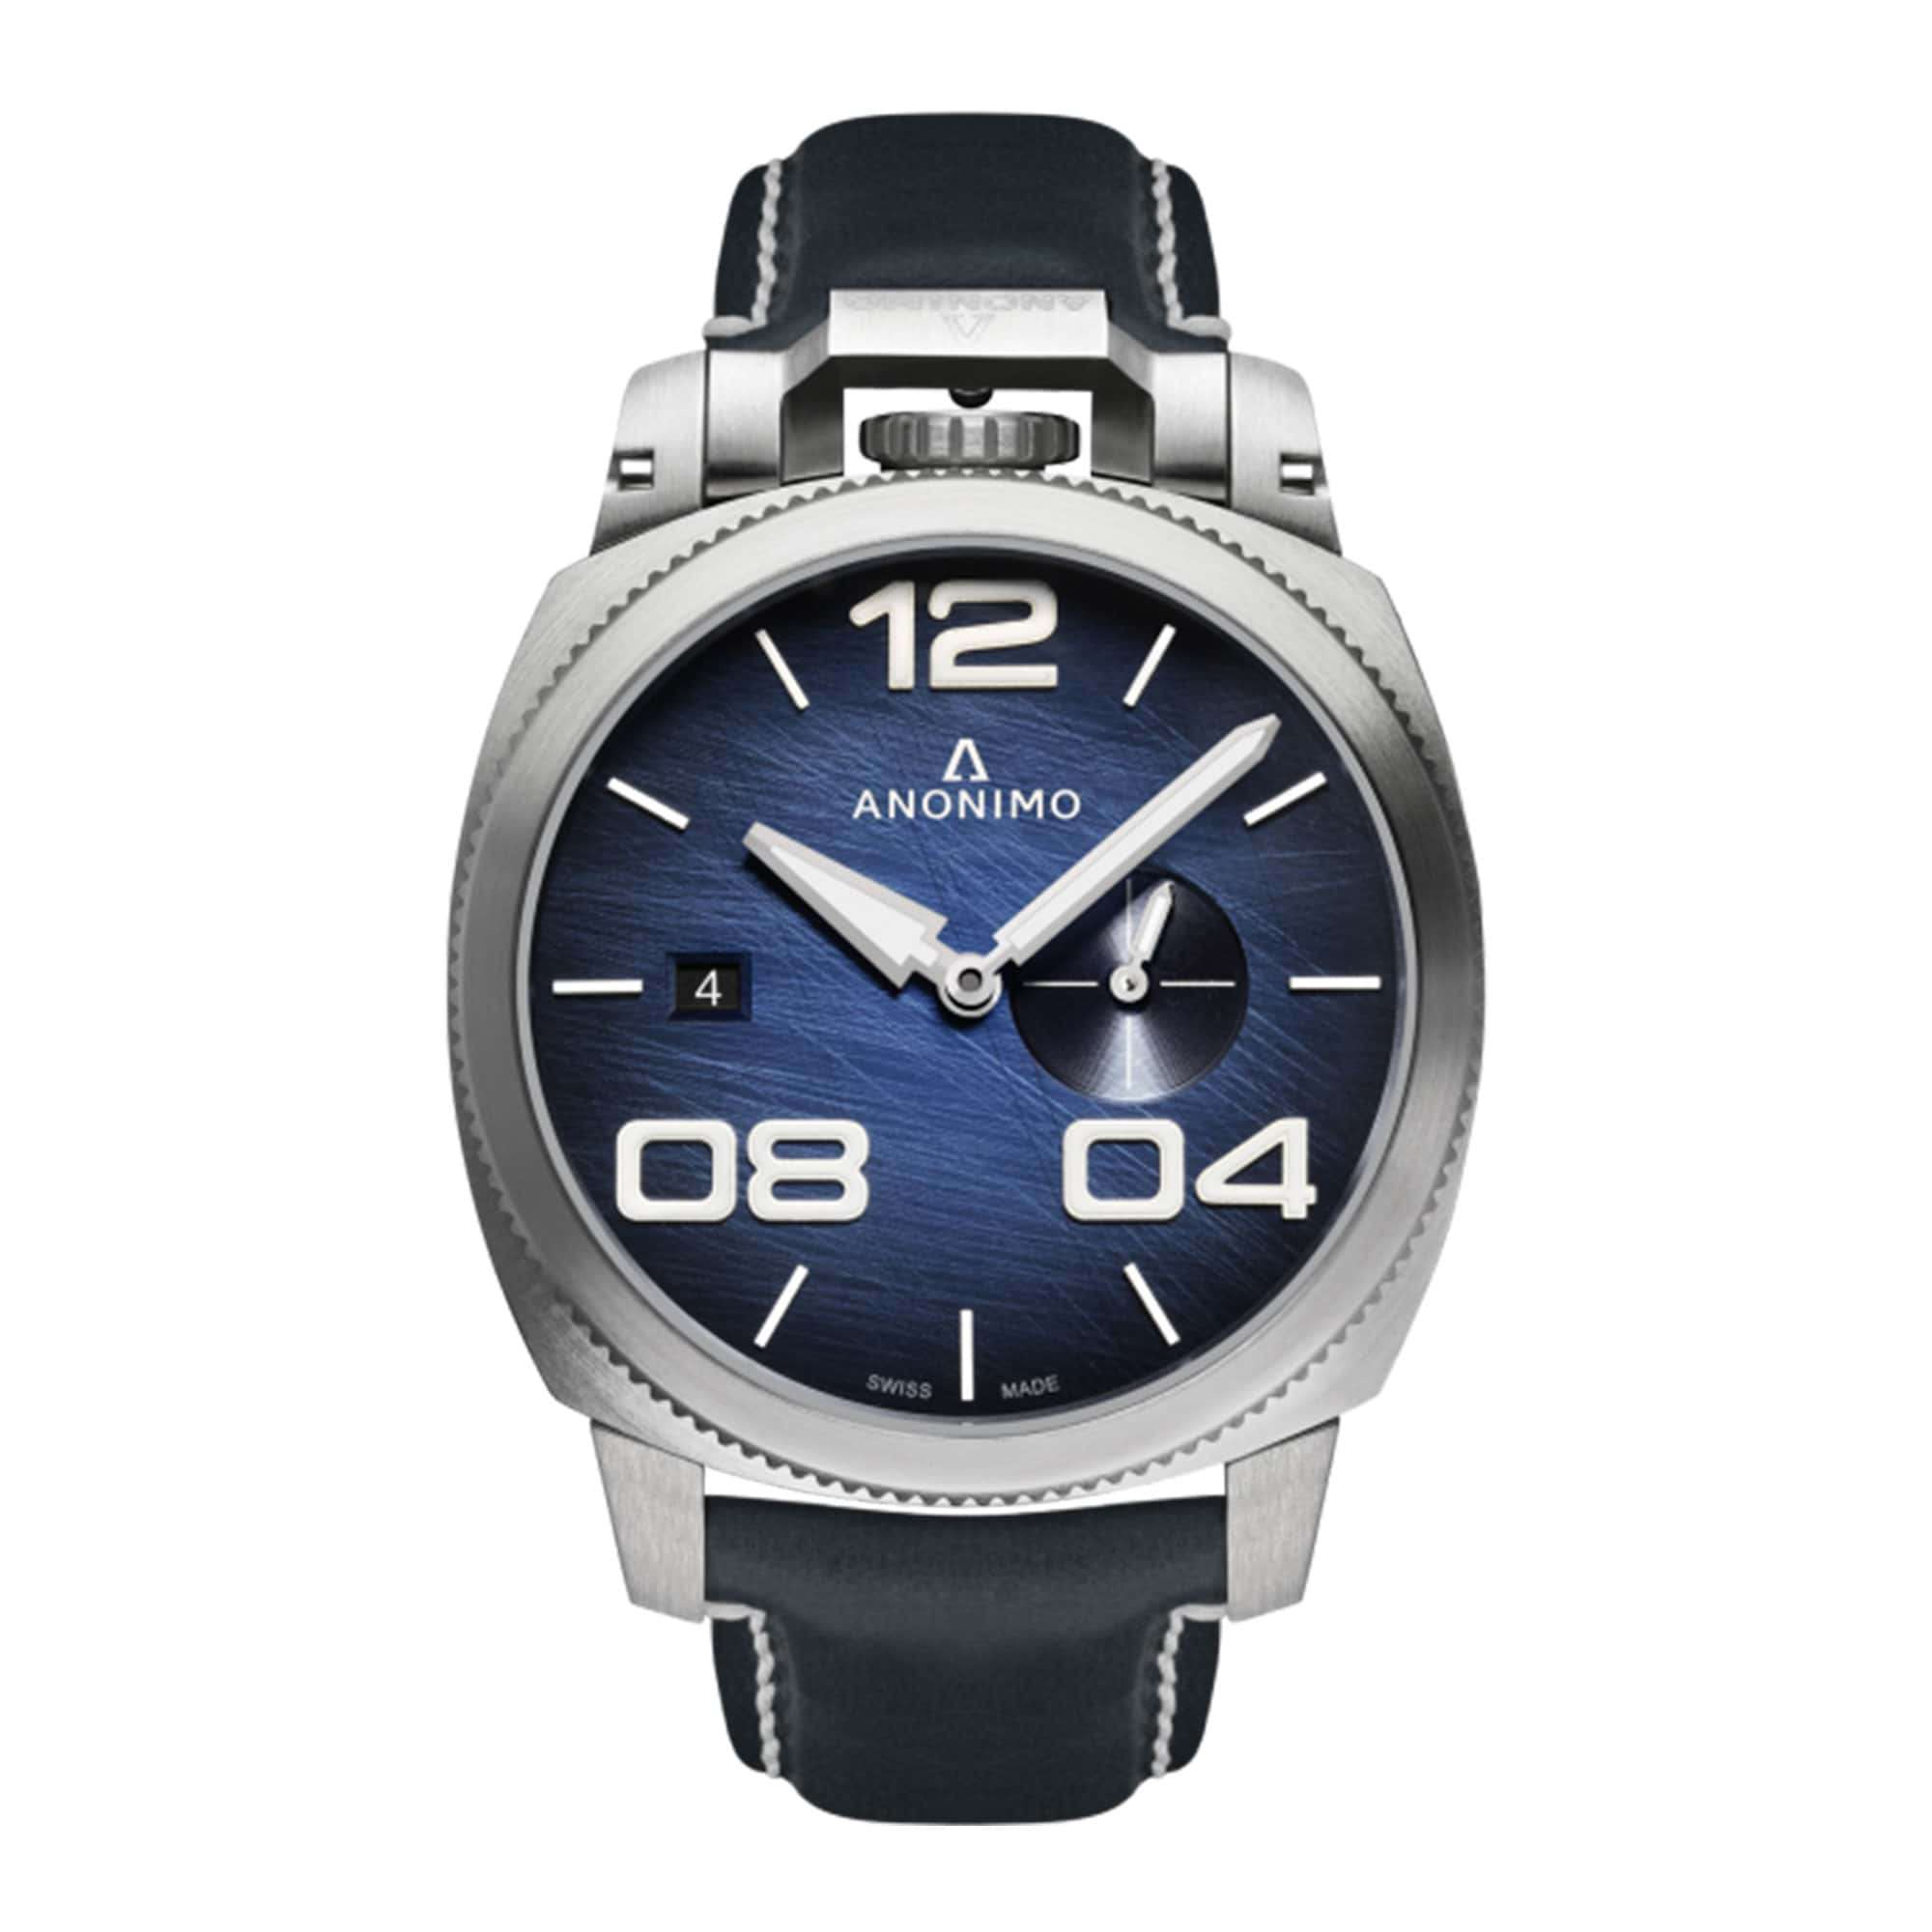 Anonimo Militare Automatic Stainless Steel AM-1020.01.003.A03 – Swiss Time